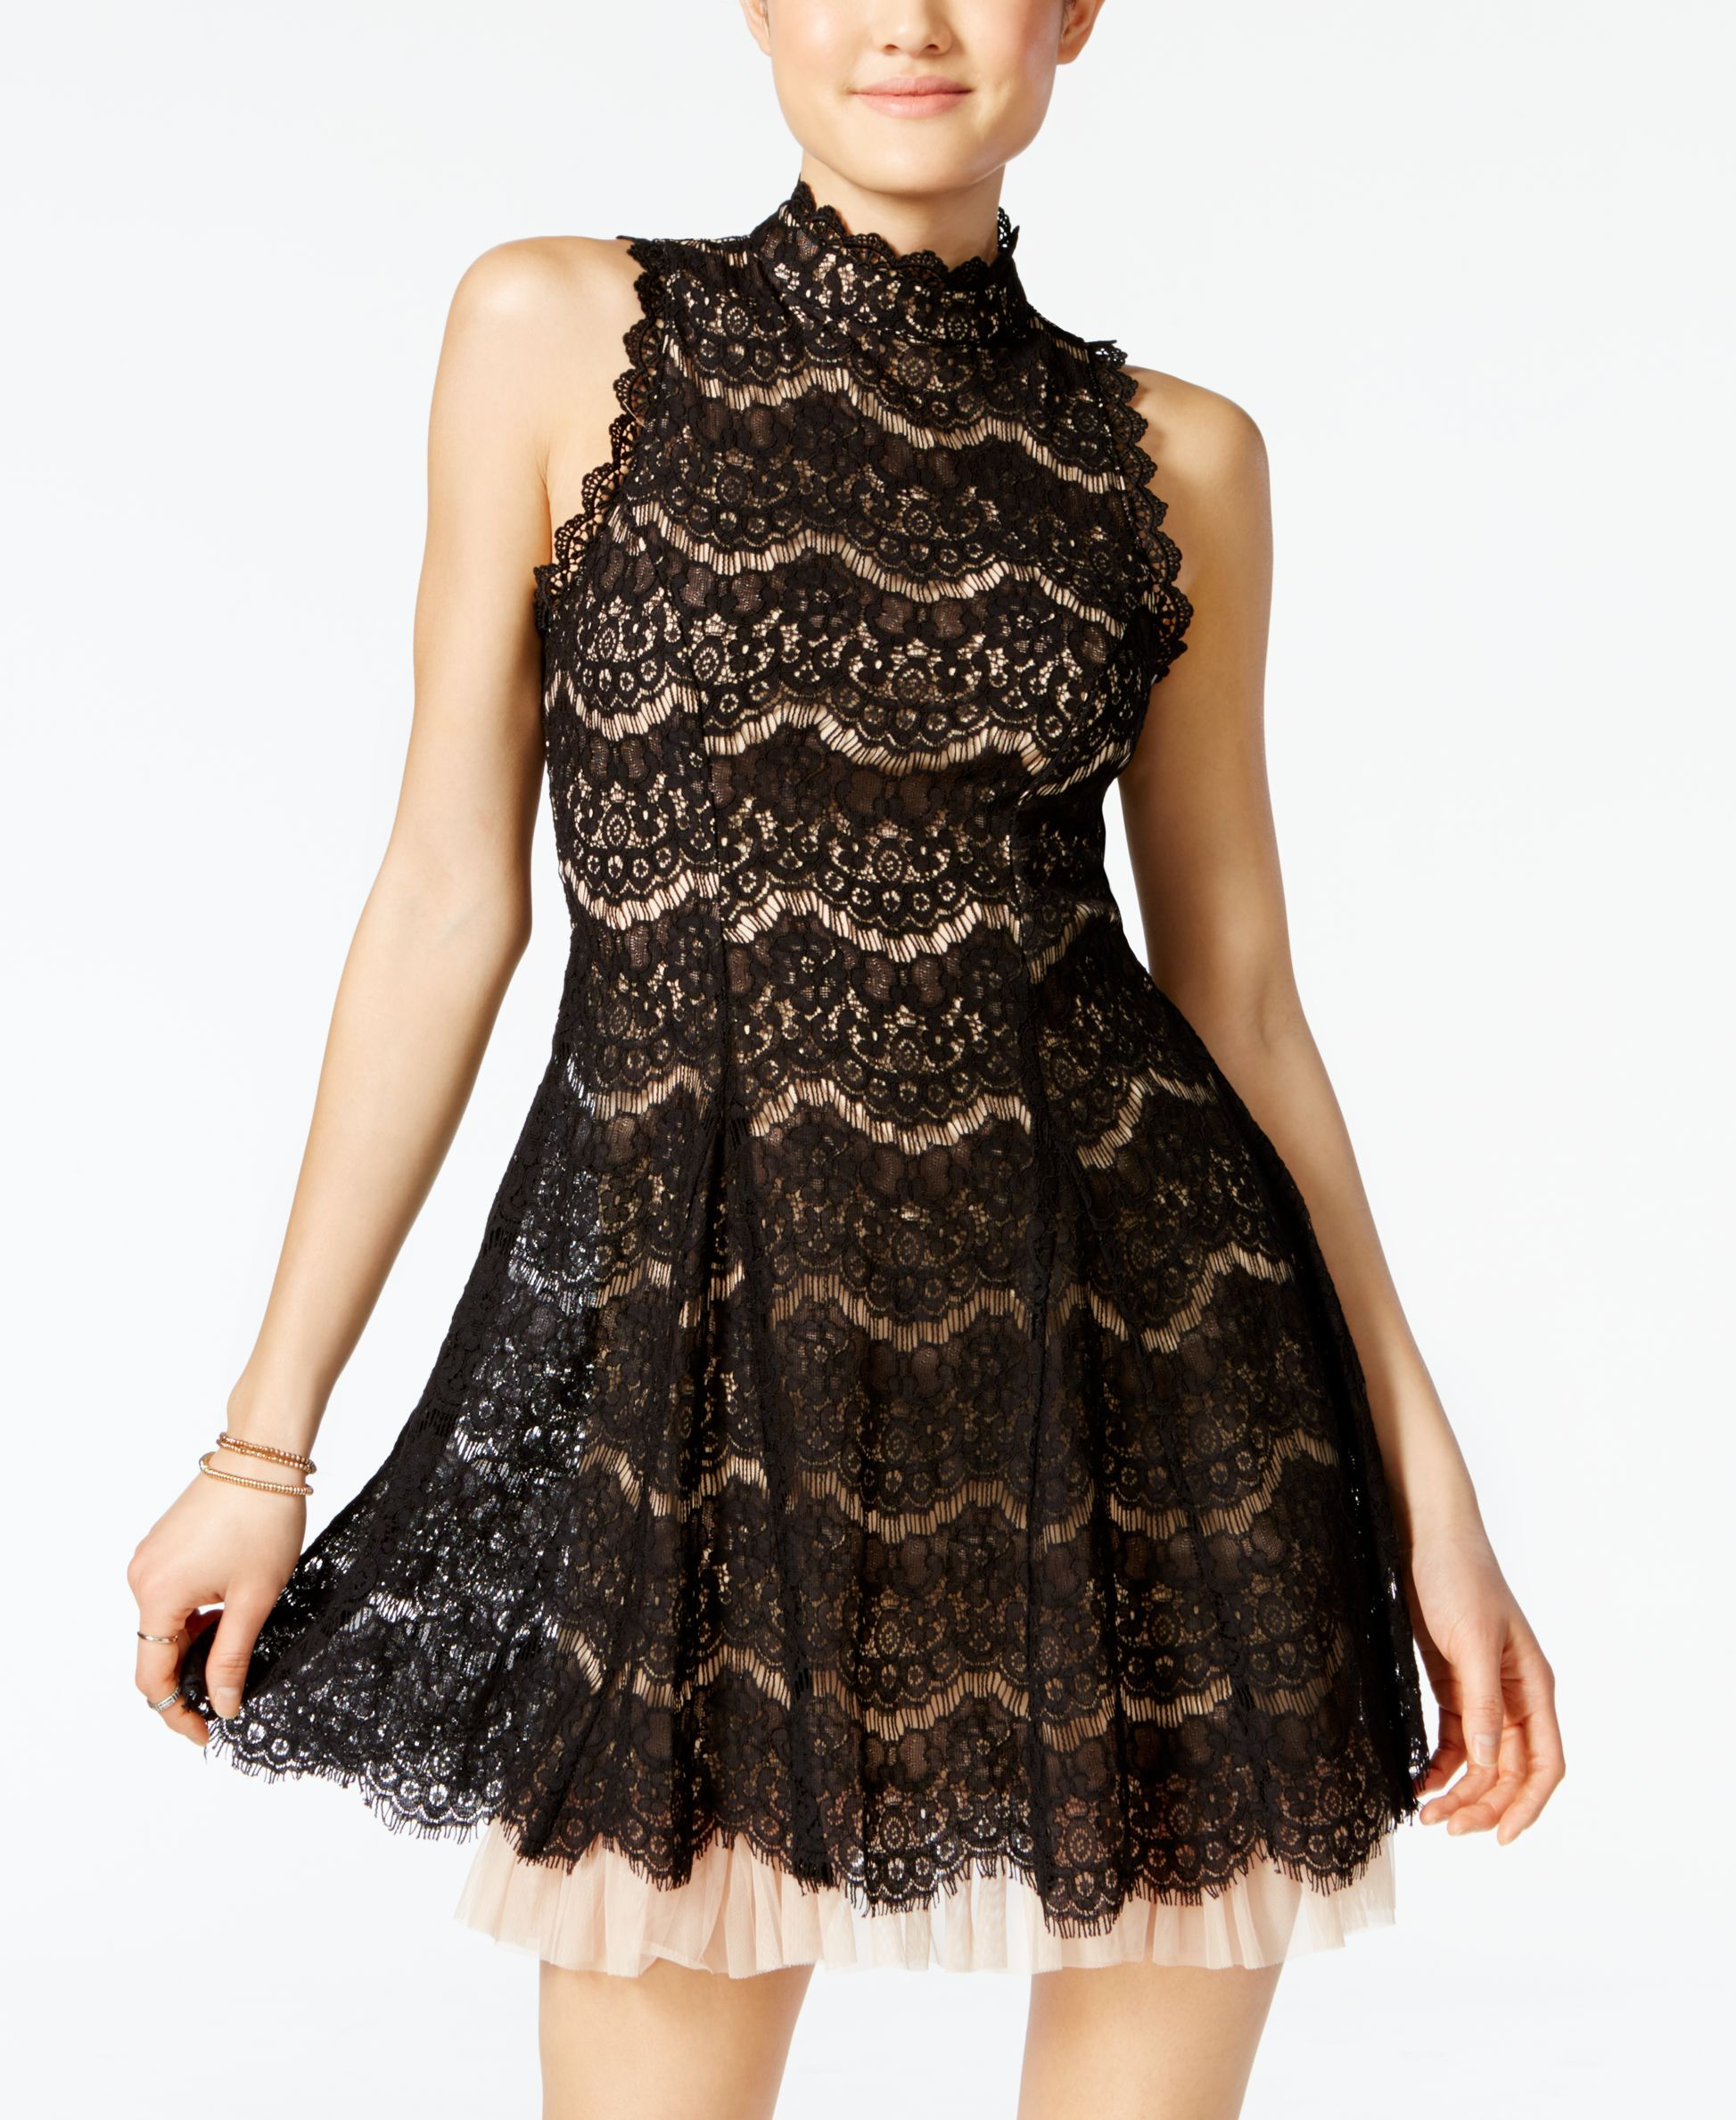 85f284db3 Trixxi Juniors' Lace Tulle Fit & Flare Dress | Products in 2019 ...